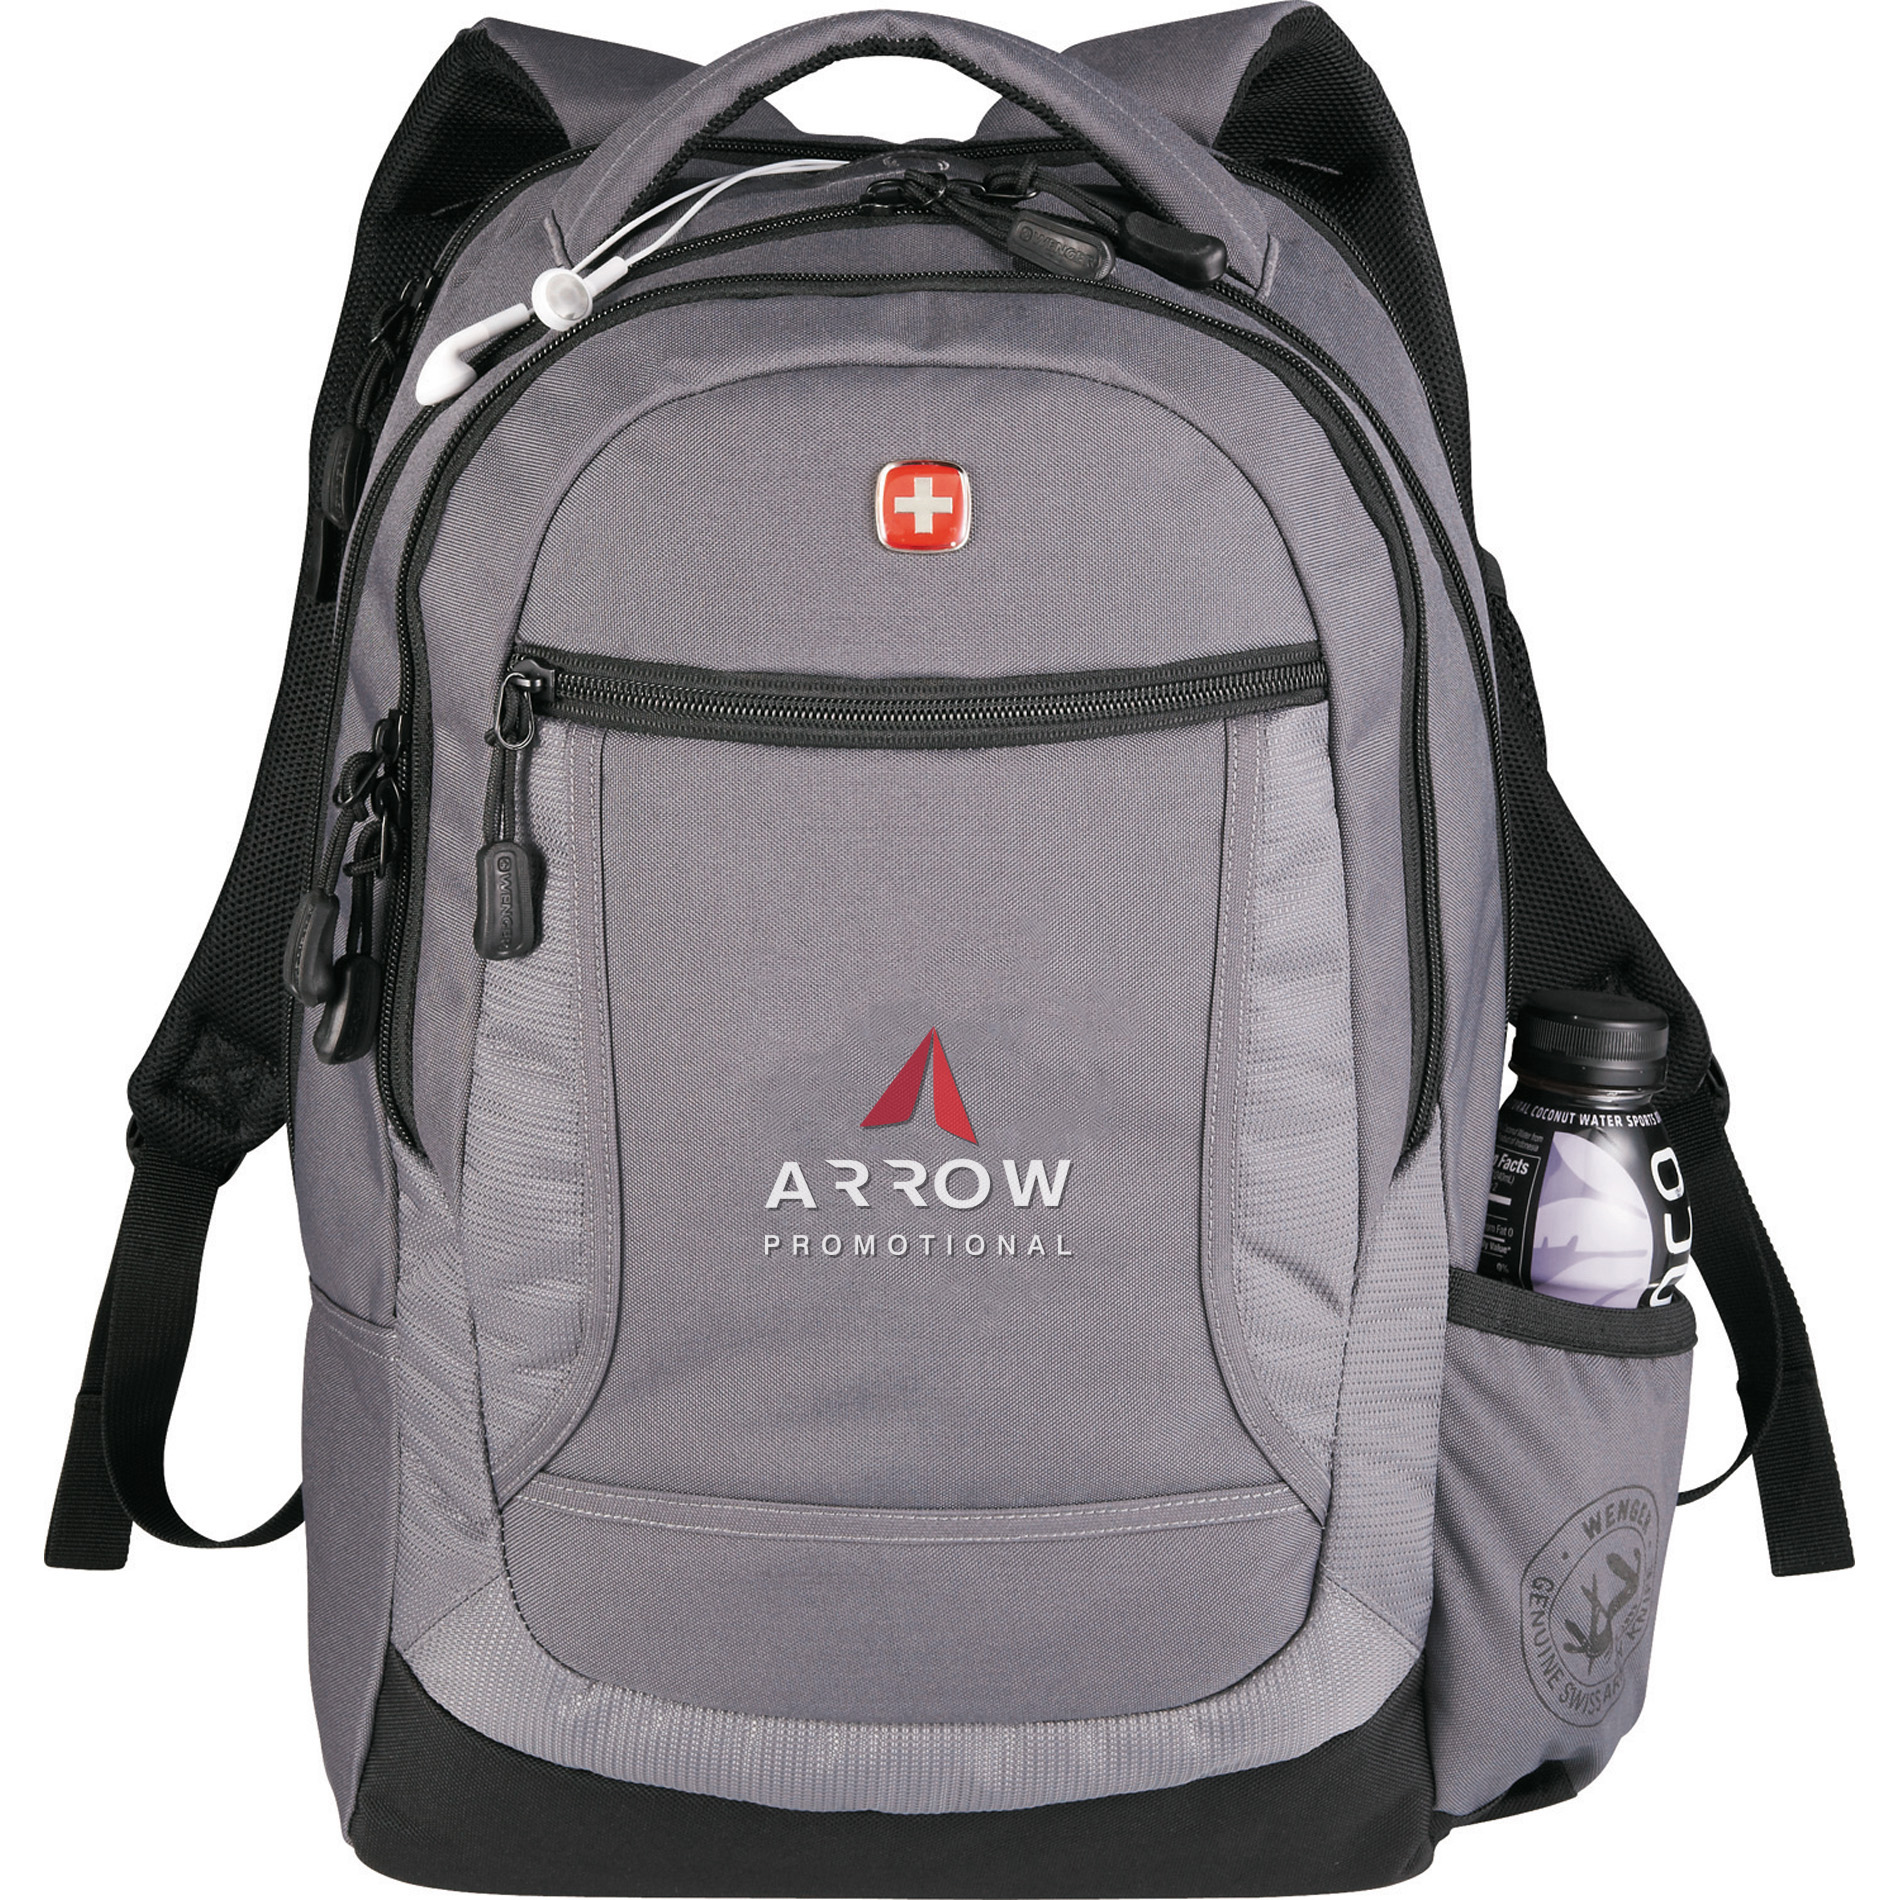 Top Ten_Arrow Promotional_Backpack